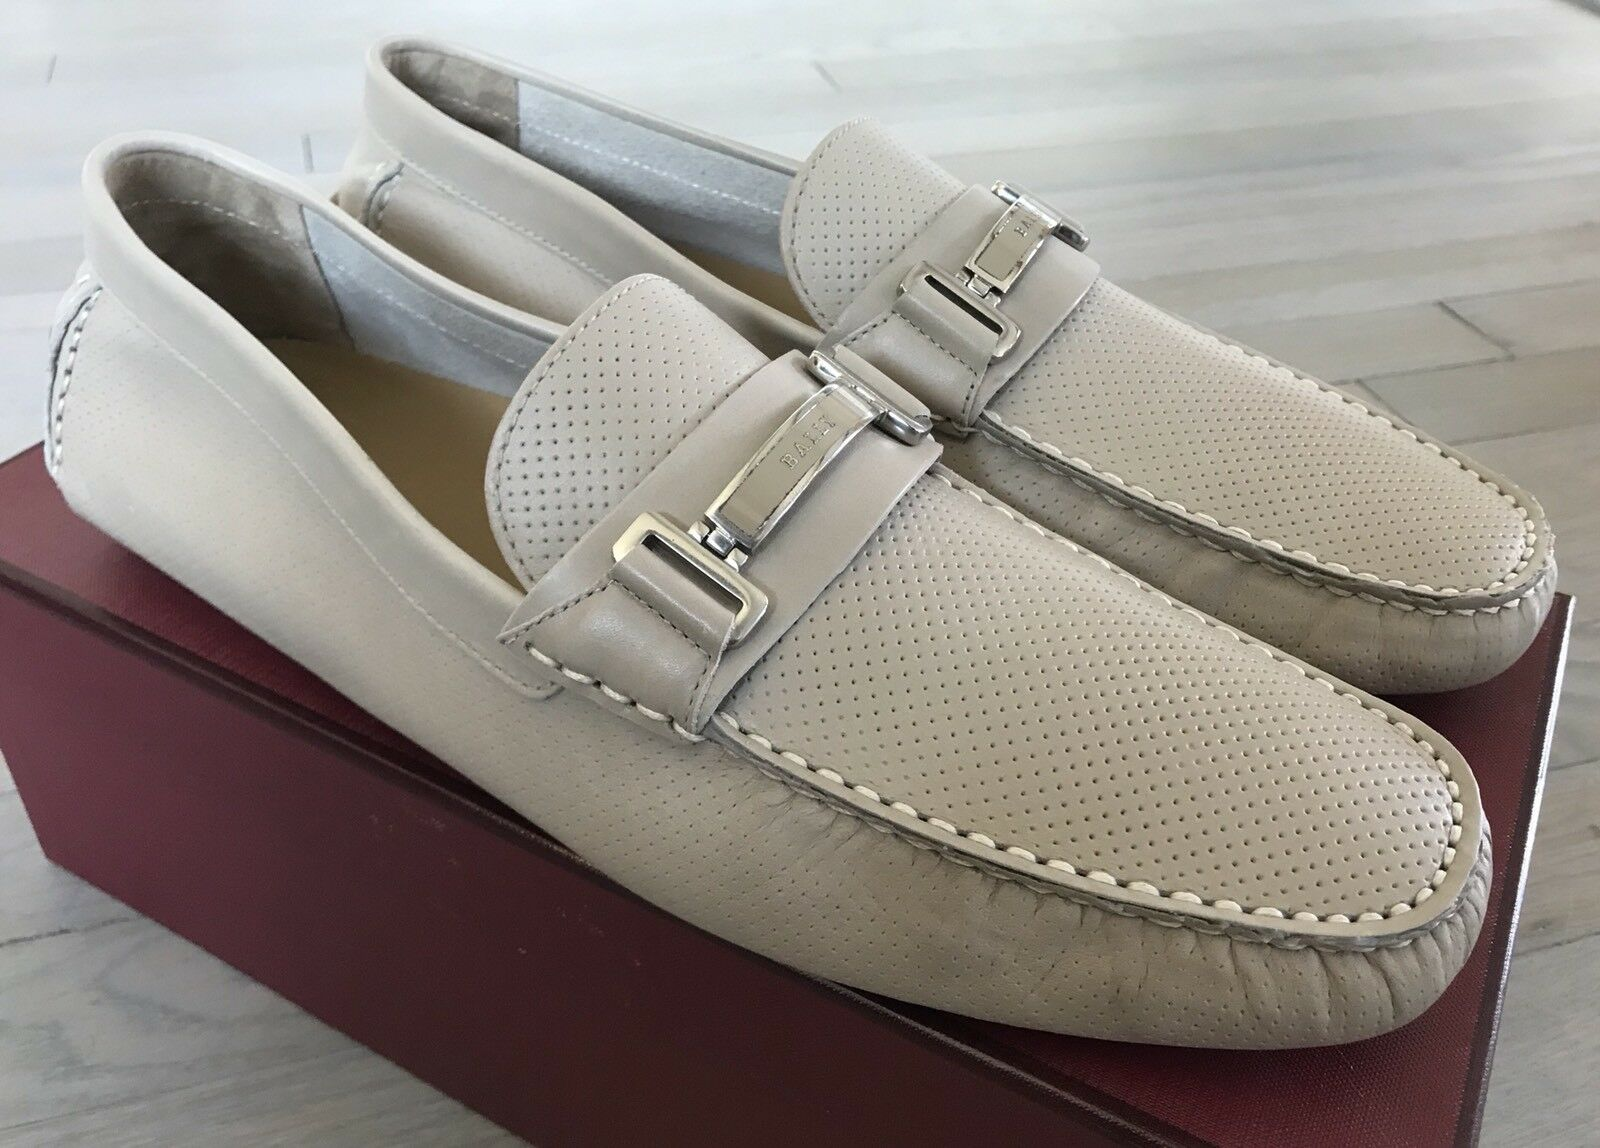 600$ Bally Drulio Beige Perforated Leather Driver Size US 10 Made in Italy